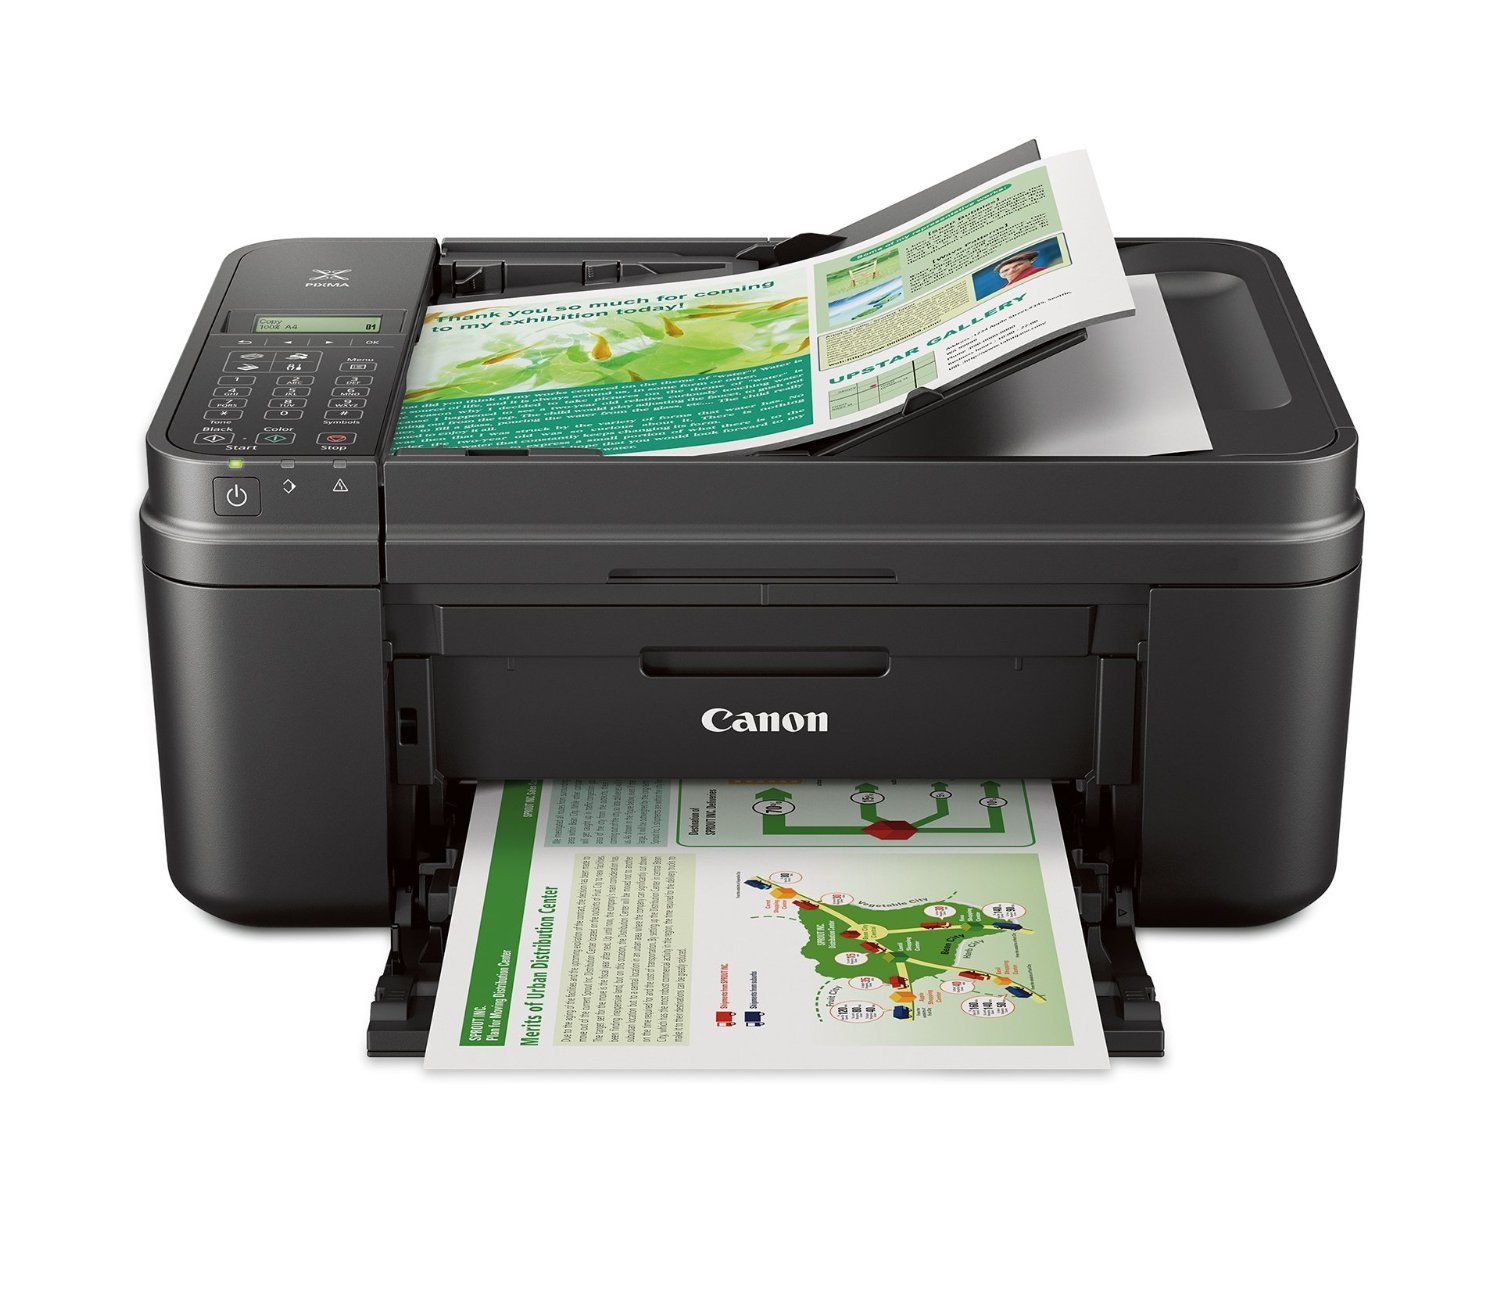 Printer Canon MX495 Driver for Linux Mint 18 How to Download and Install - Featured